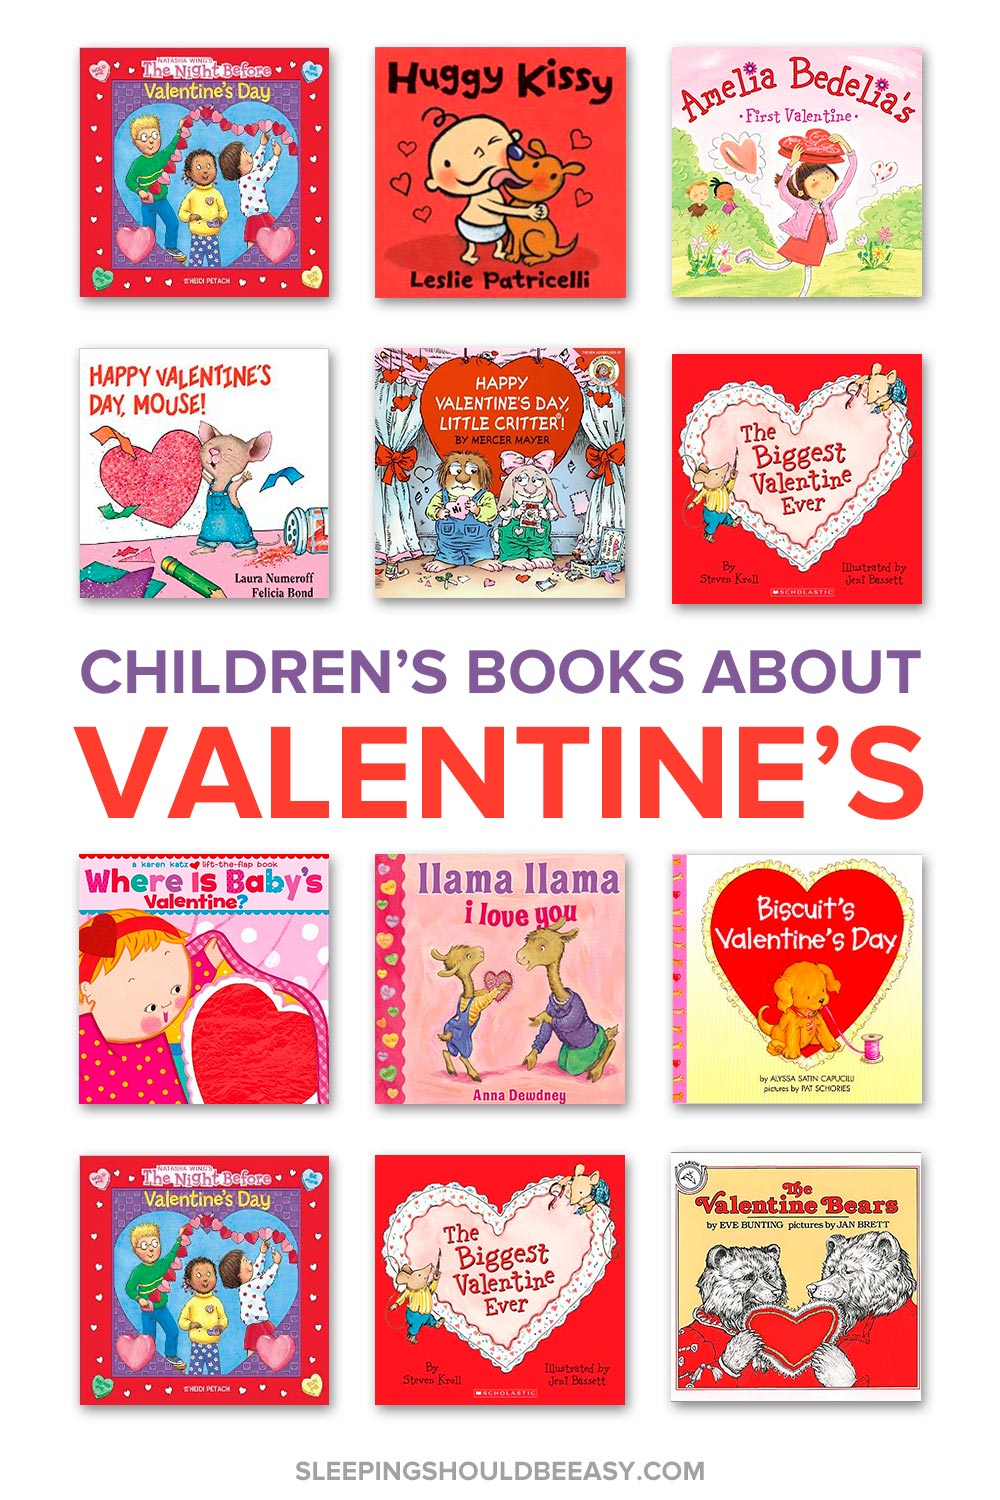 A comprehensive collection of children's books about Valentine's Day, including favorite characters! Perfect to read with your kids for the holiday.